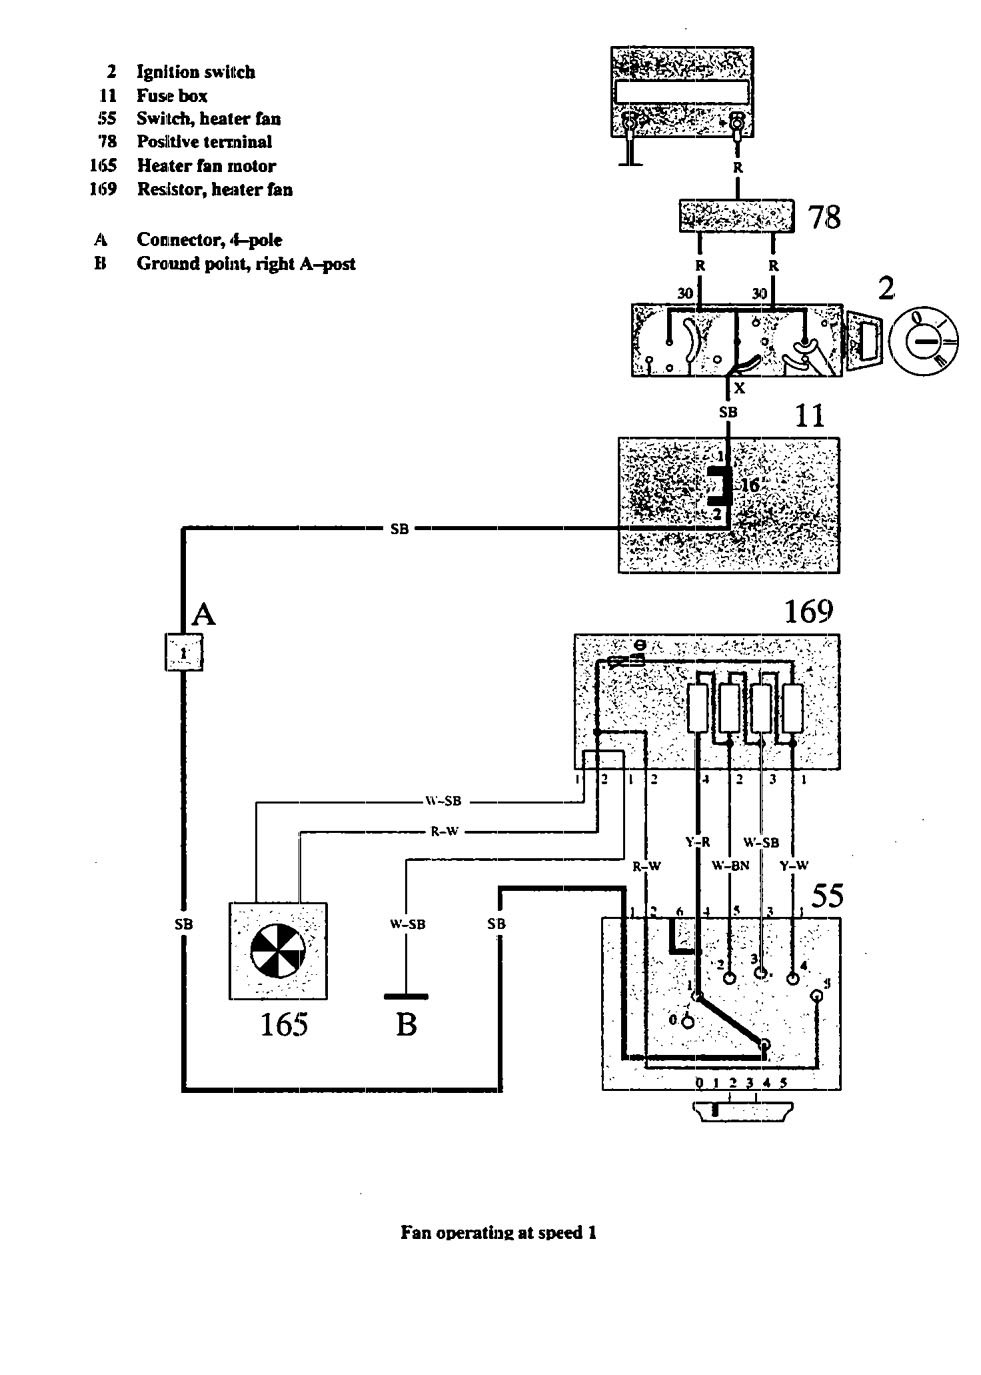 Volvo 740 Radio Wiring Diagram Library Amazon Heater Fans